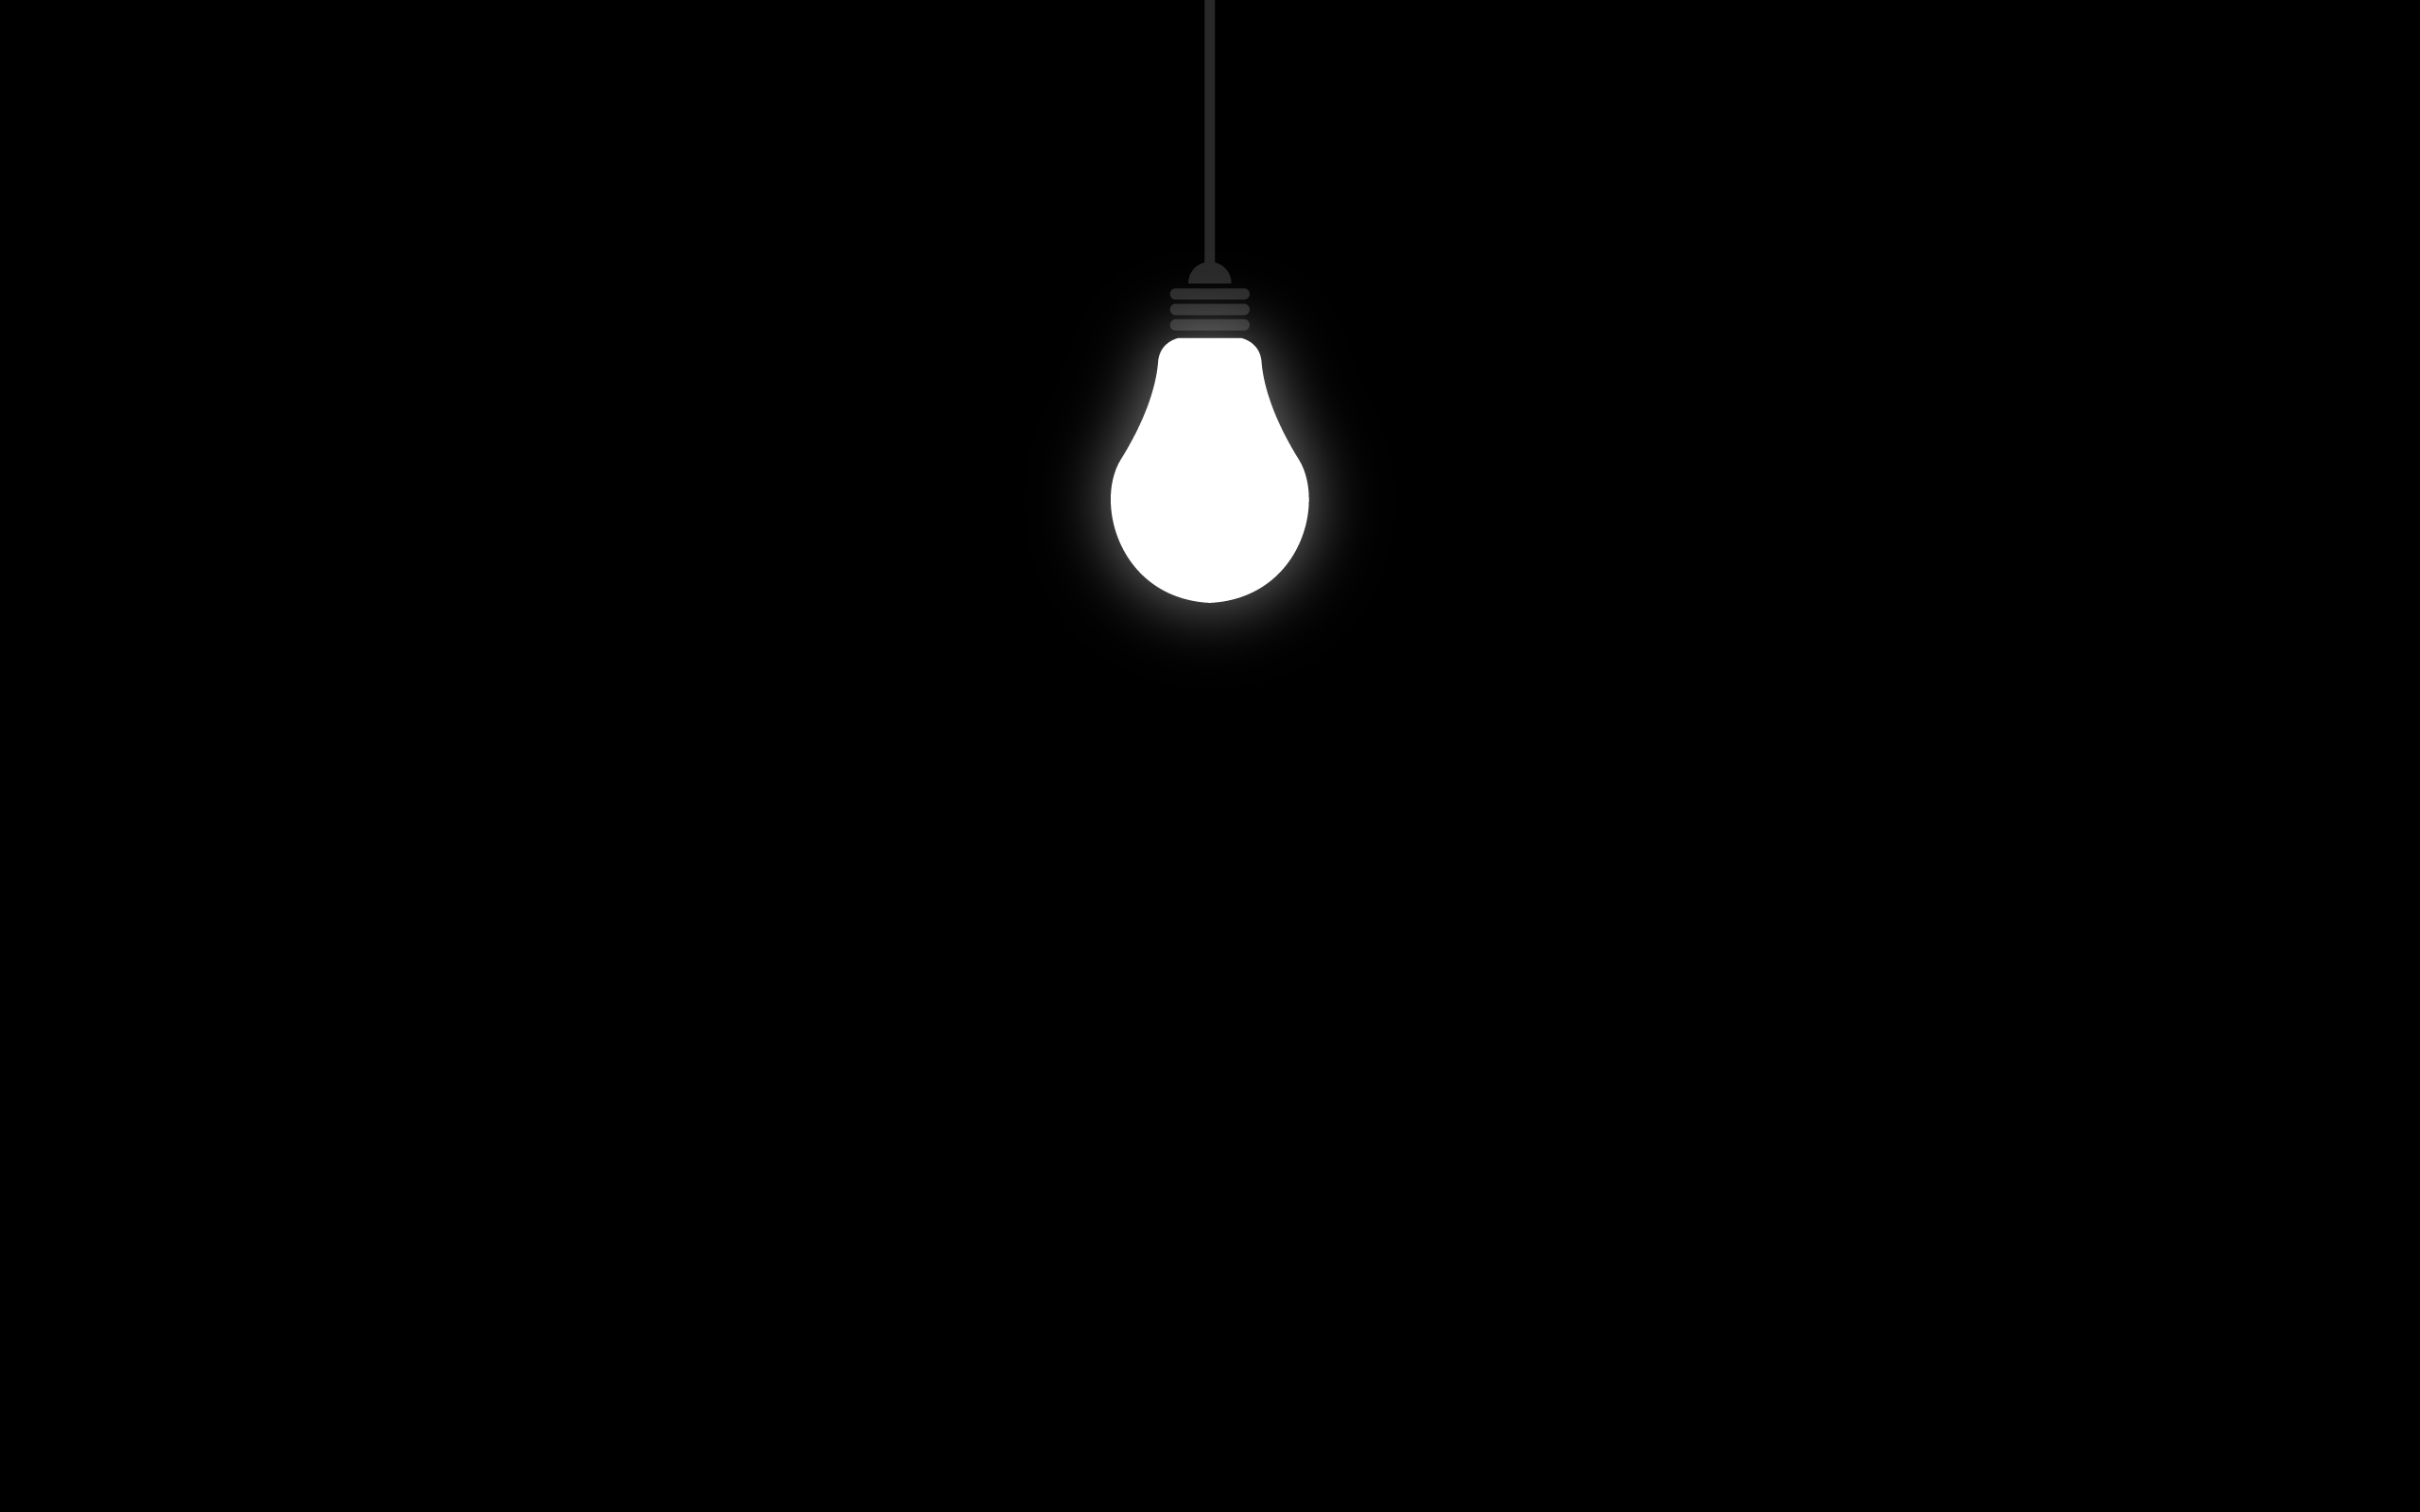 Super Amoled Wallpaper